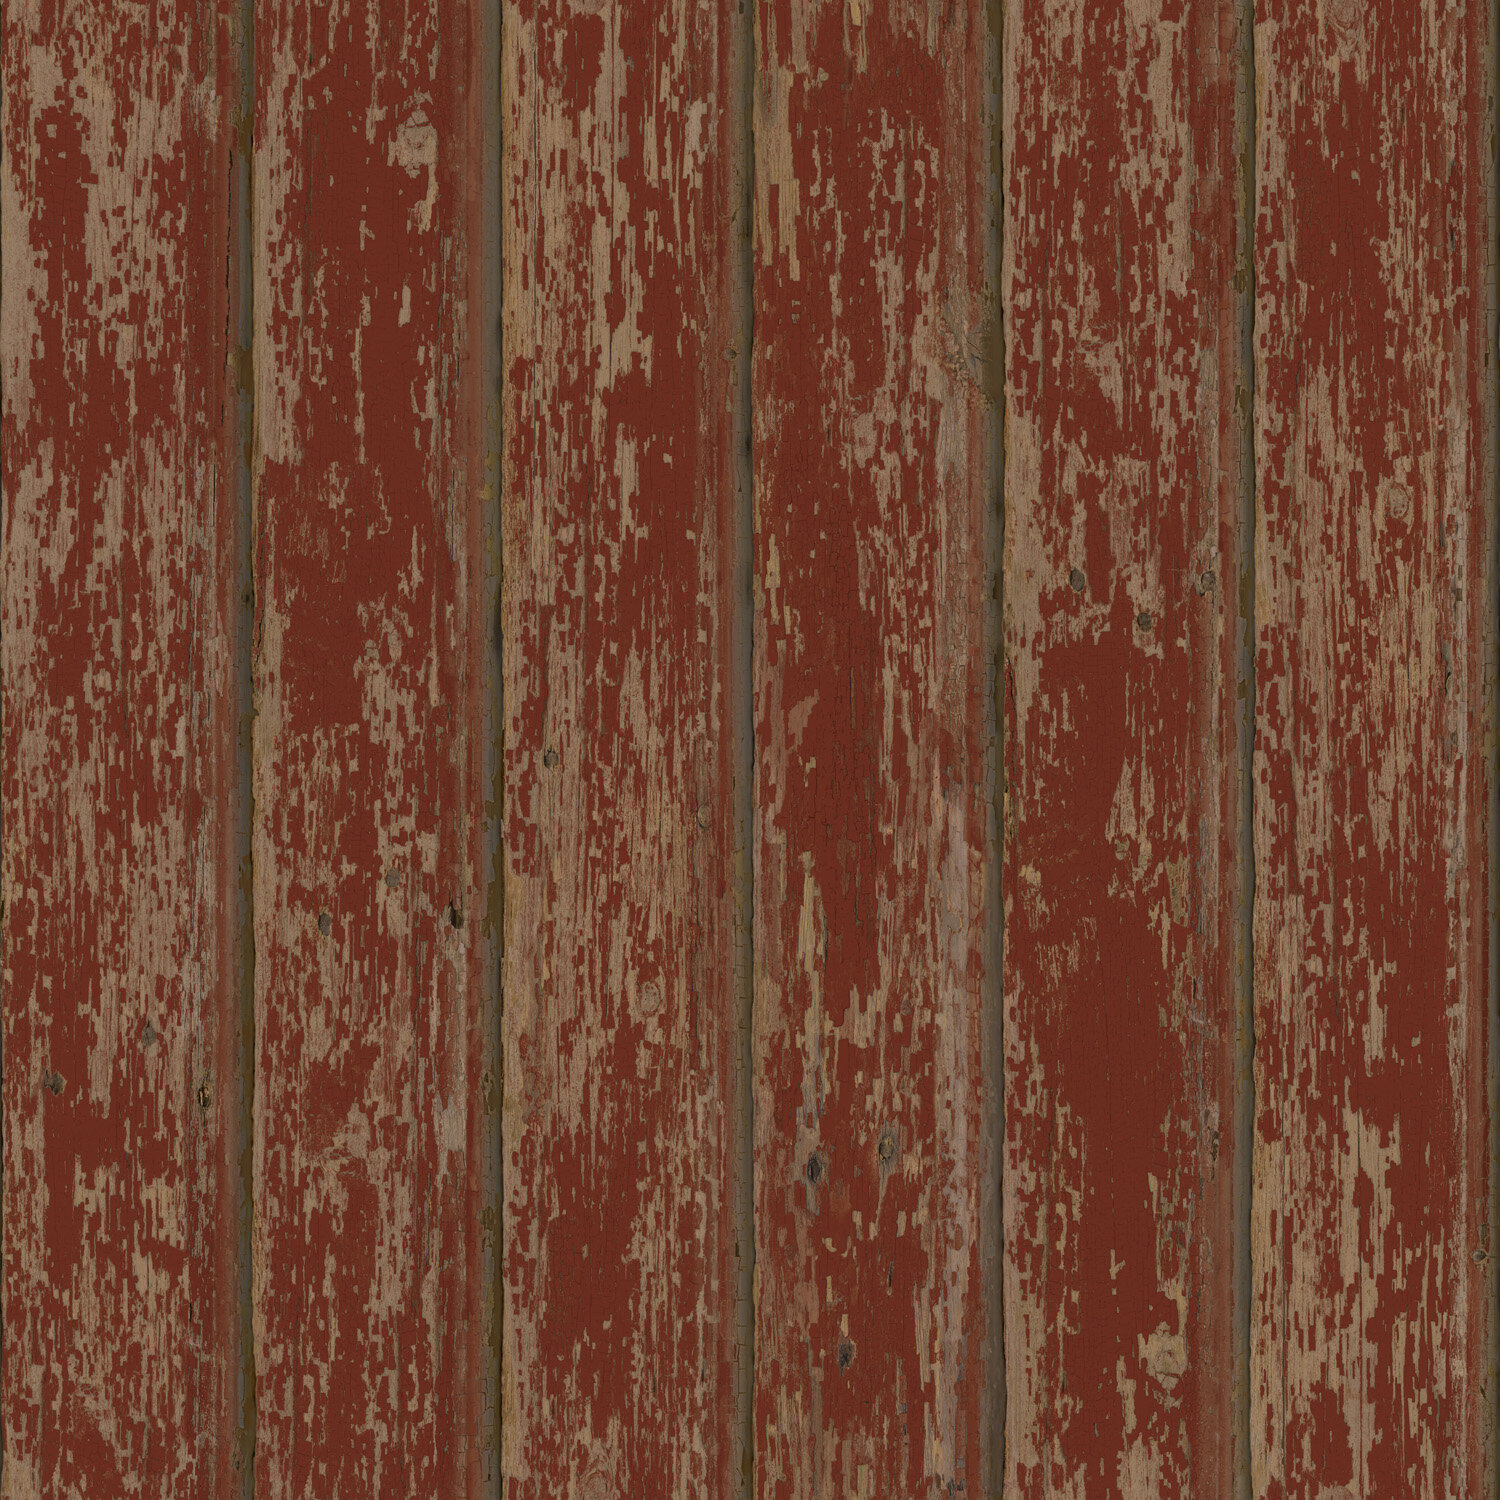 Brewster Home Fashions Pure Country Brax Faux Weathered Clapboard 33 X 20 5 Wood Embossed Wallpaper Wayfair